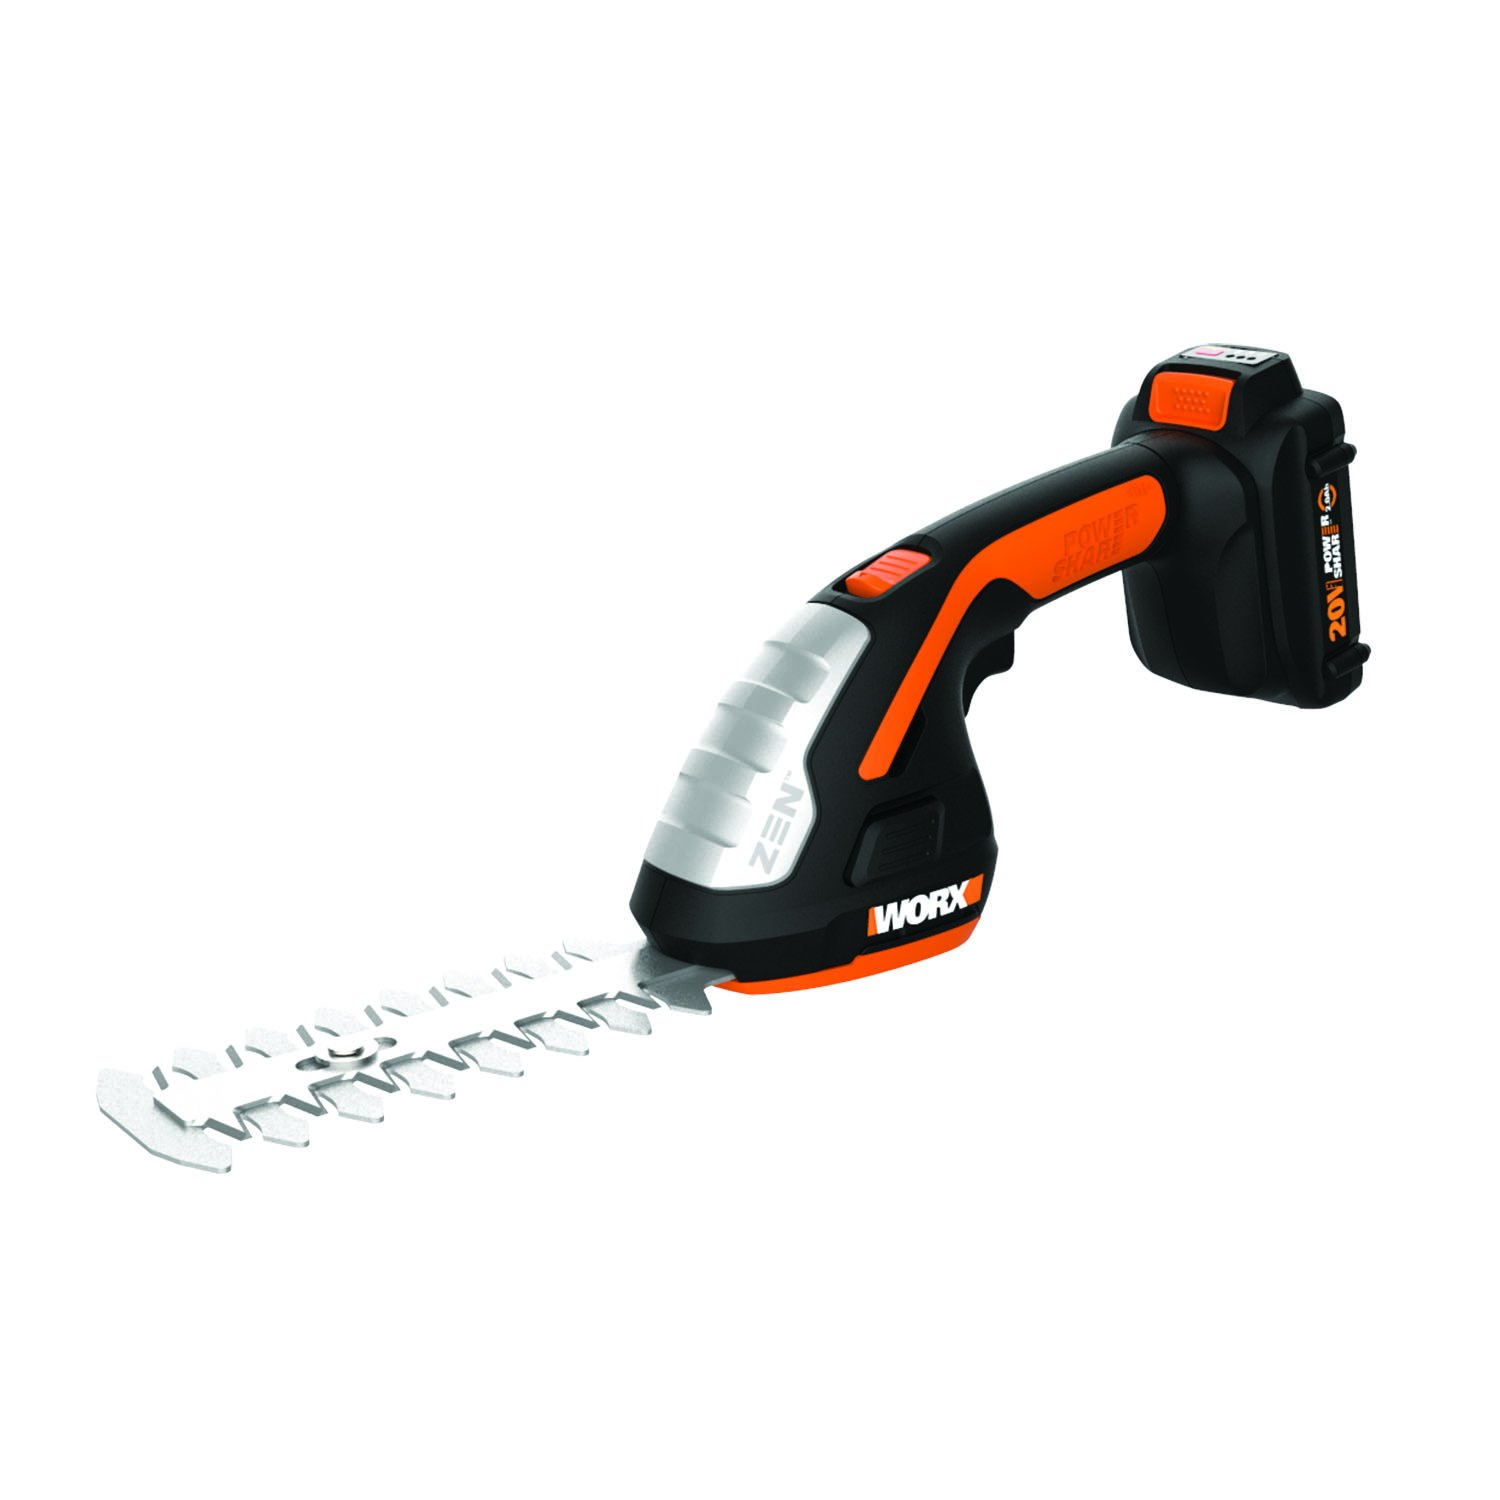 Worx WG801 Lithium Ion Shear Shrubber Trimmer, Black and Orange